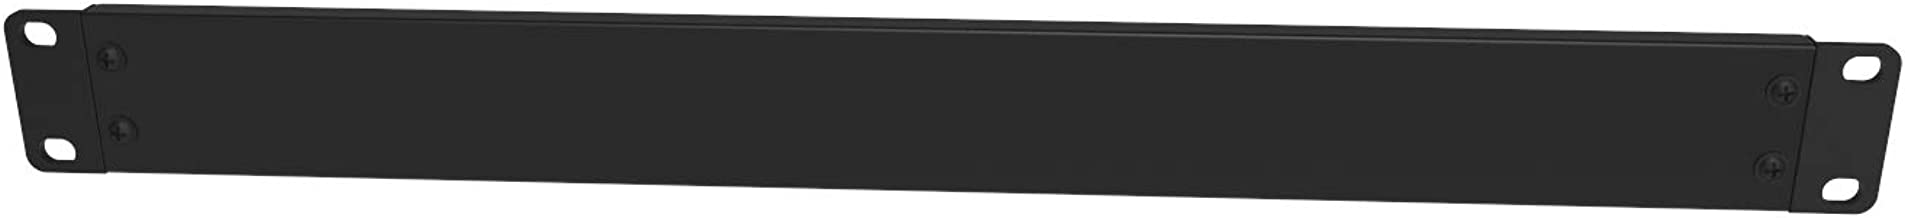 Jingchengmei 1U New Disassembled Blank Rack Mount Panel for 19-Inch Server Rack Enclosure or Network Cabinet, Black